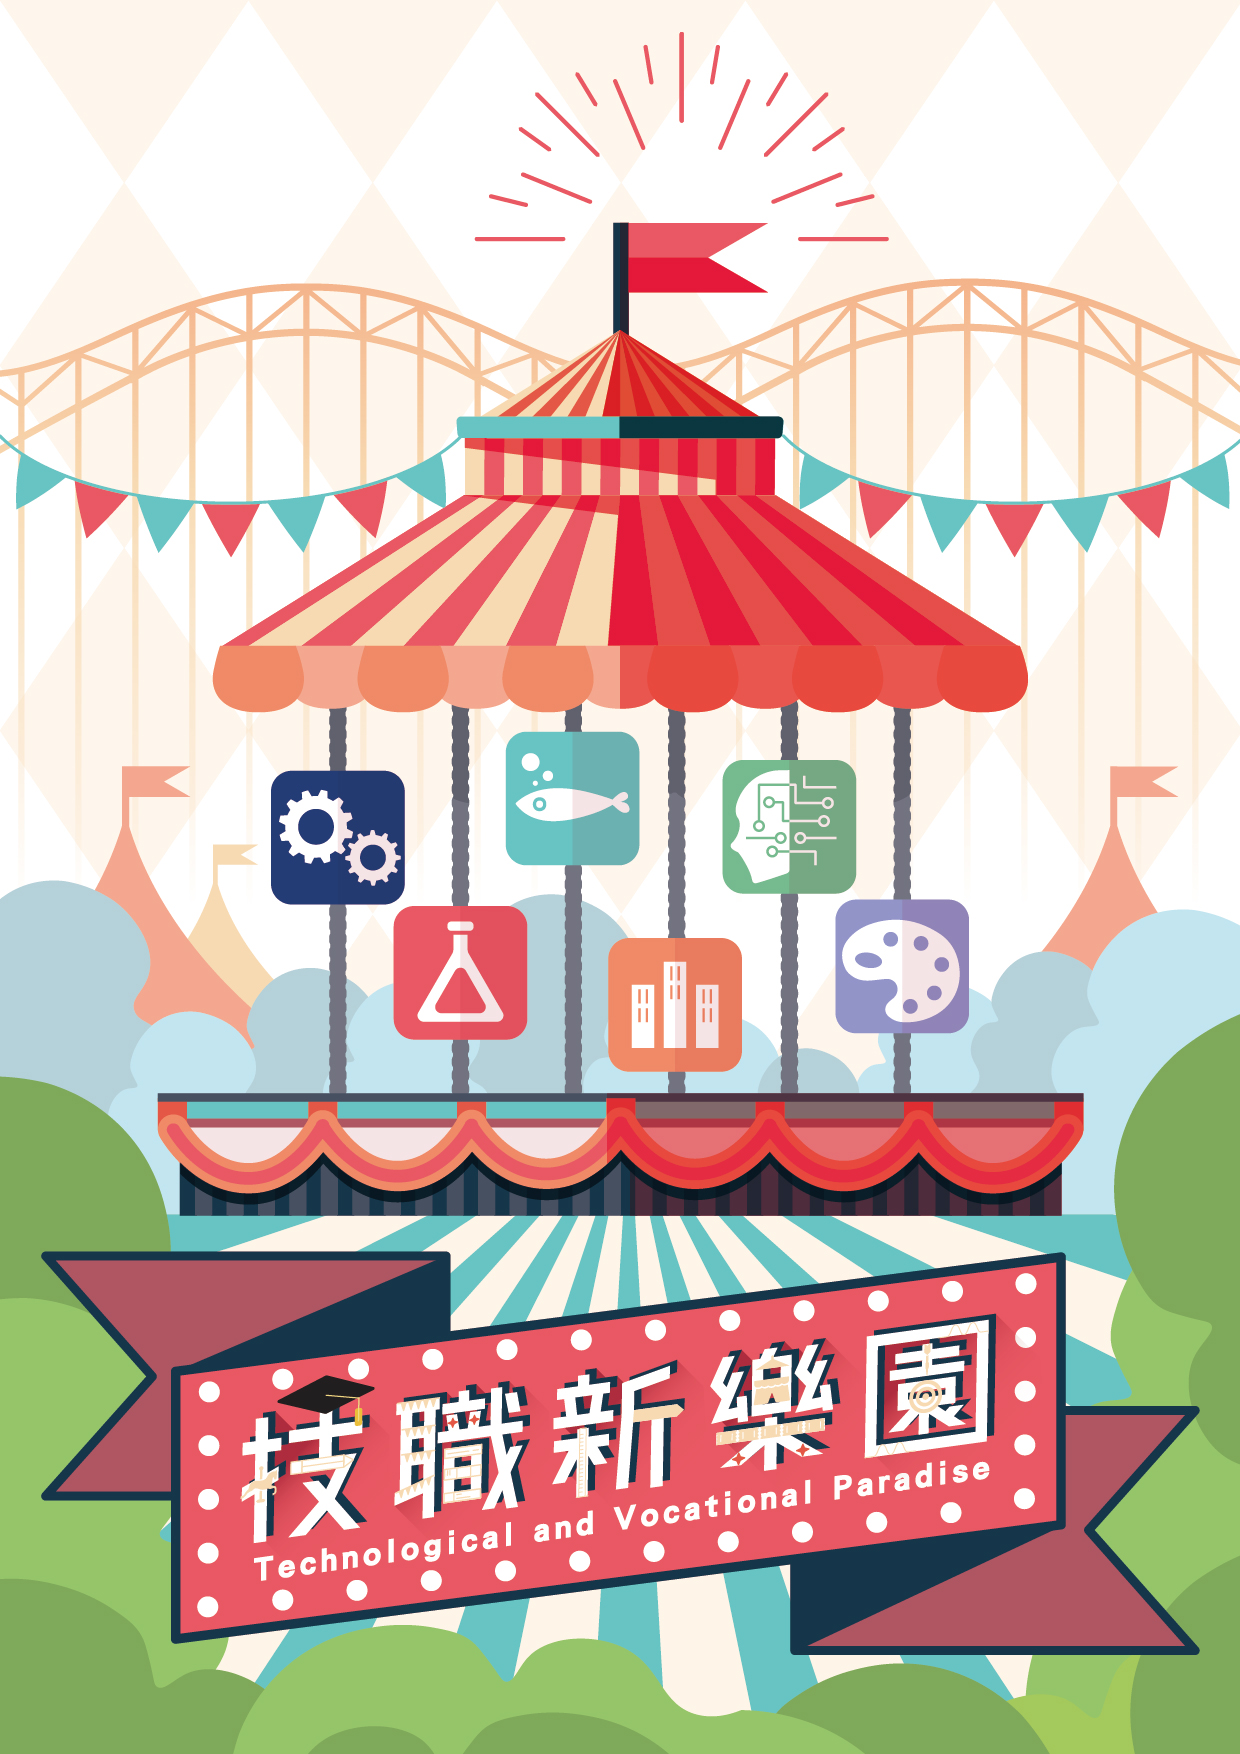 Now is the future, exploring the Technological and Vocational Paradise(技職新樂園)